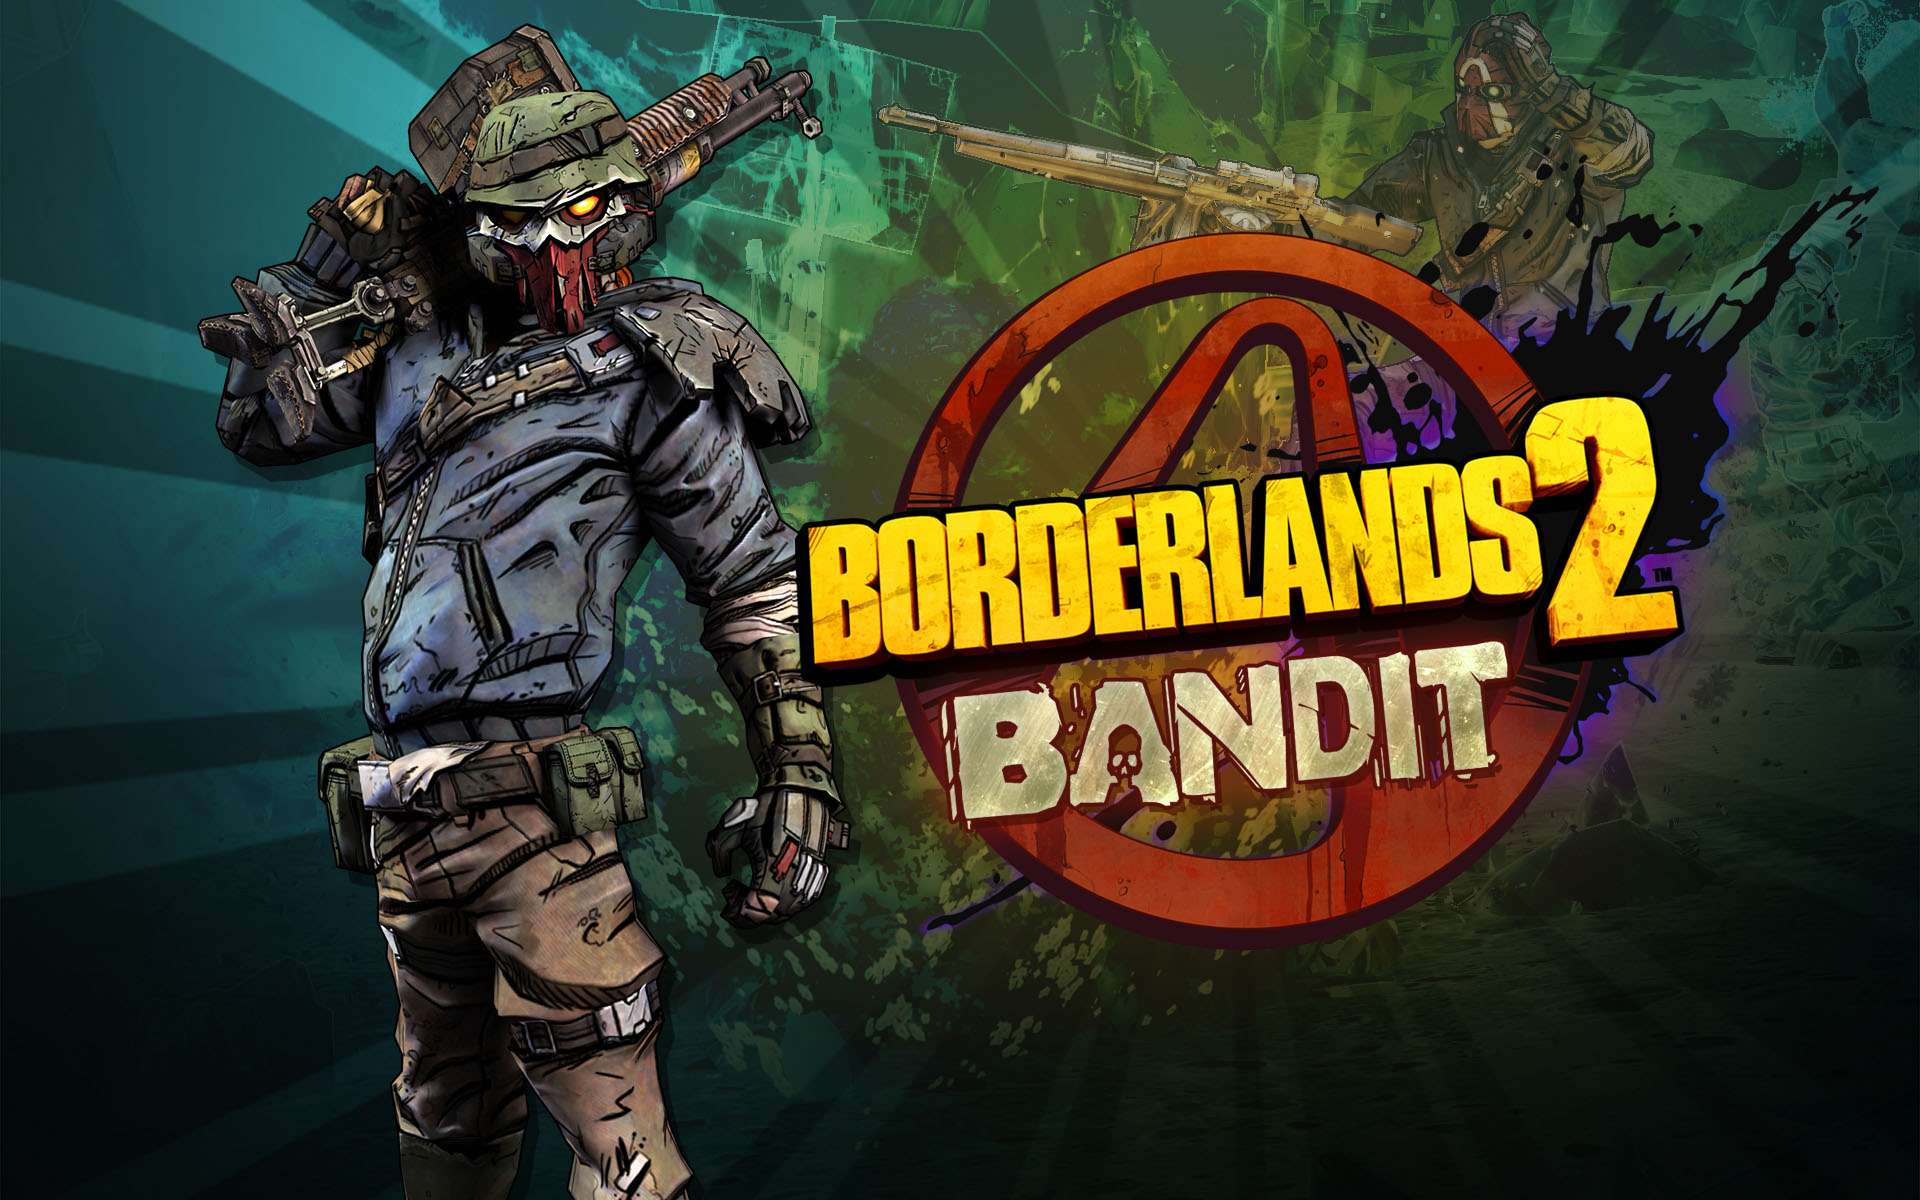 Photo collection borderlands 2 wallpaper with borderlands 2 wallpaper 1920x1080 collection 79 voltagebd Image collections